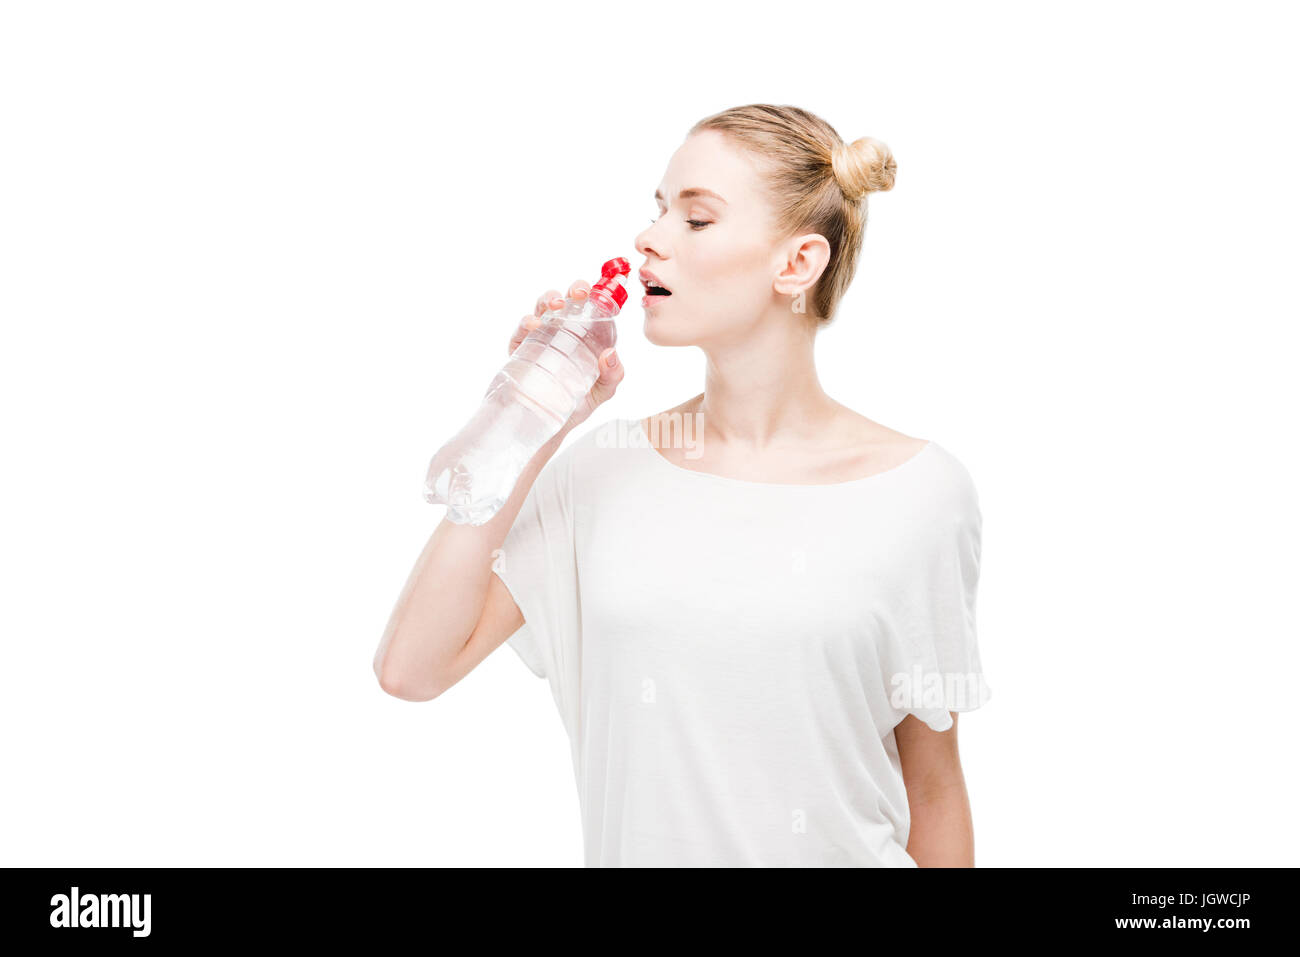 Attractive young woman in white t-shirt drinking water from bottle isolated on white - Stock Image